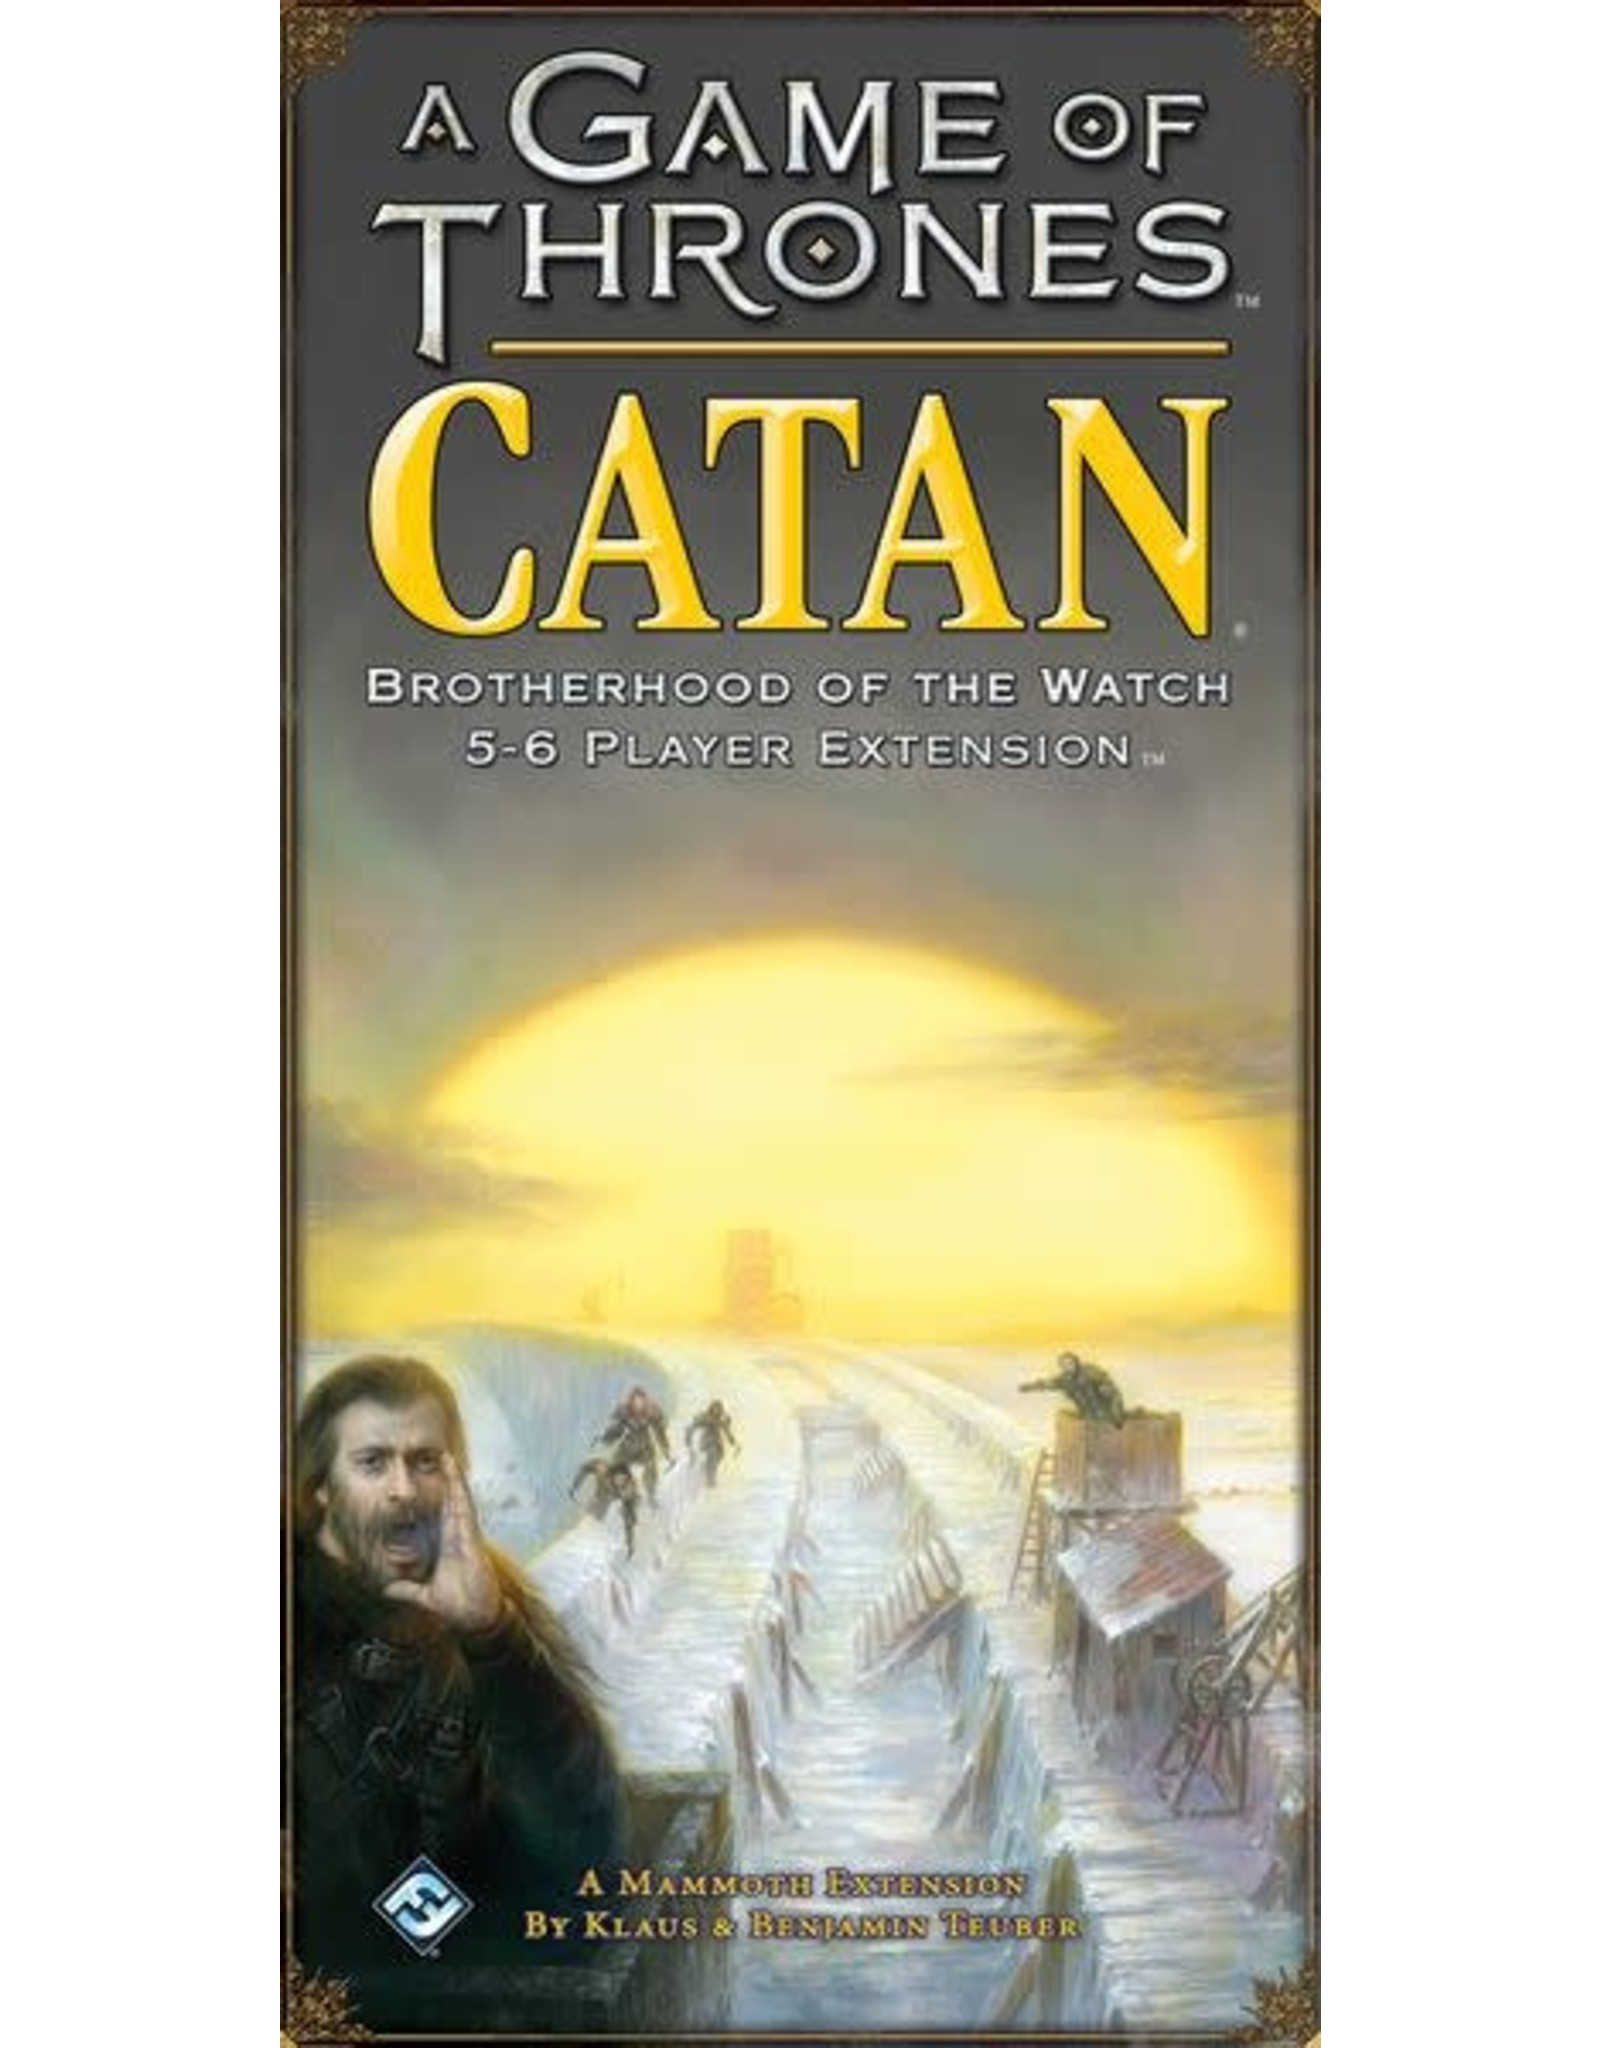 A Game of Thrones Catan: Botherhood of the Watch 5-6 Player Extension